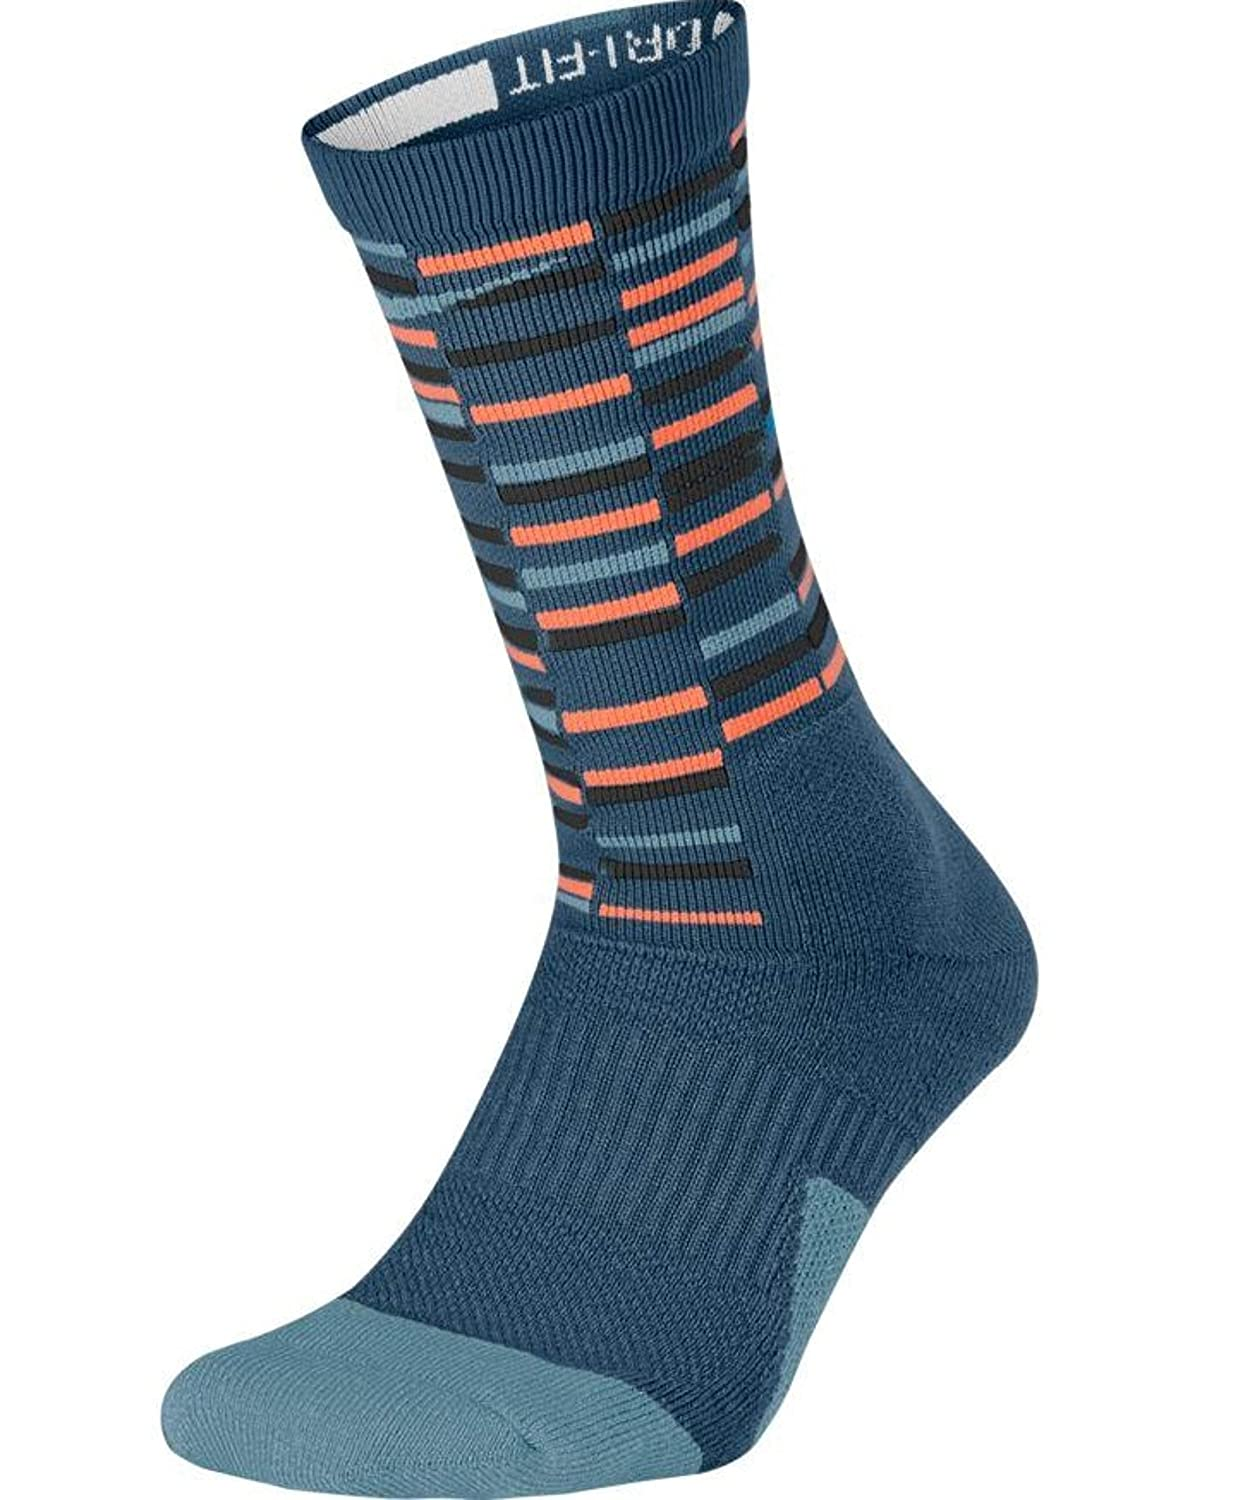 ecdc862df0f Amazon.com   NIKE Dry Elite 1.5 Crew Basketball Socks (1 Pair)   Clothing